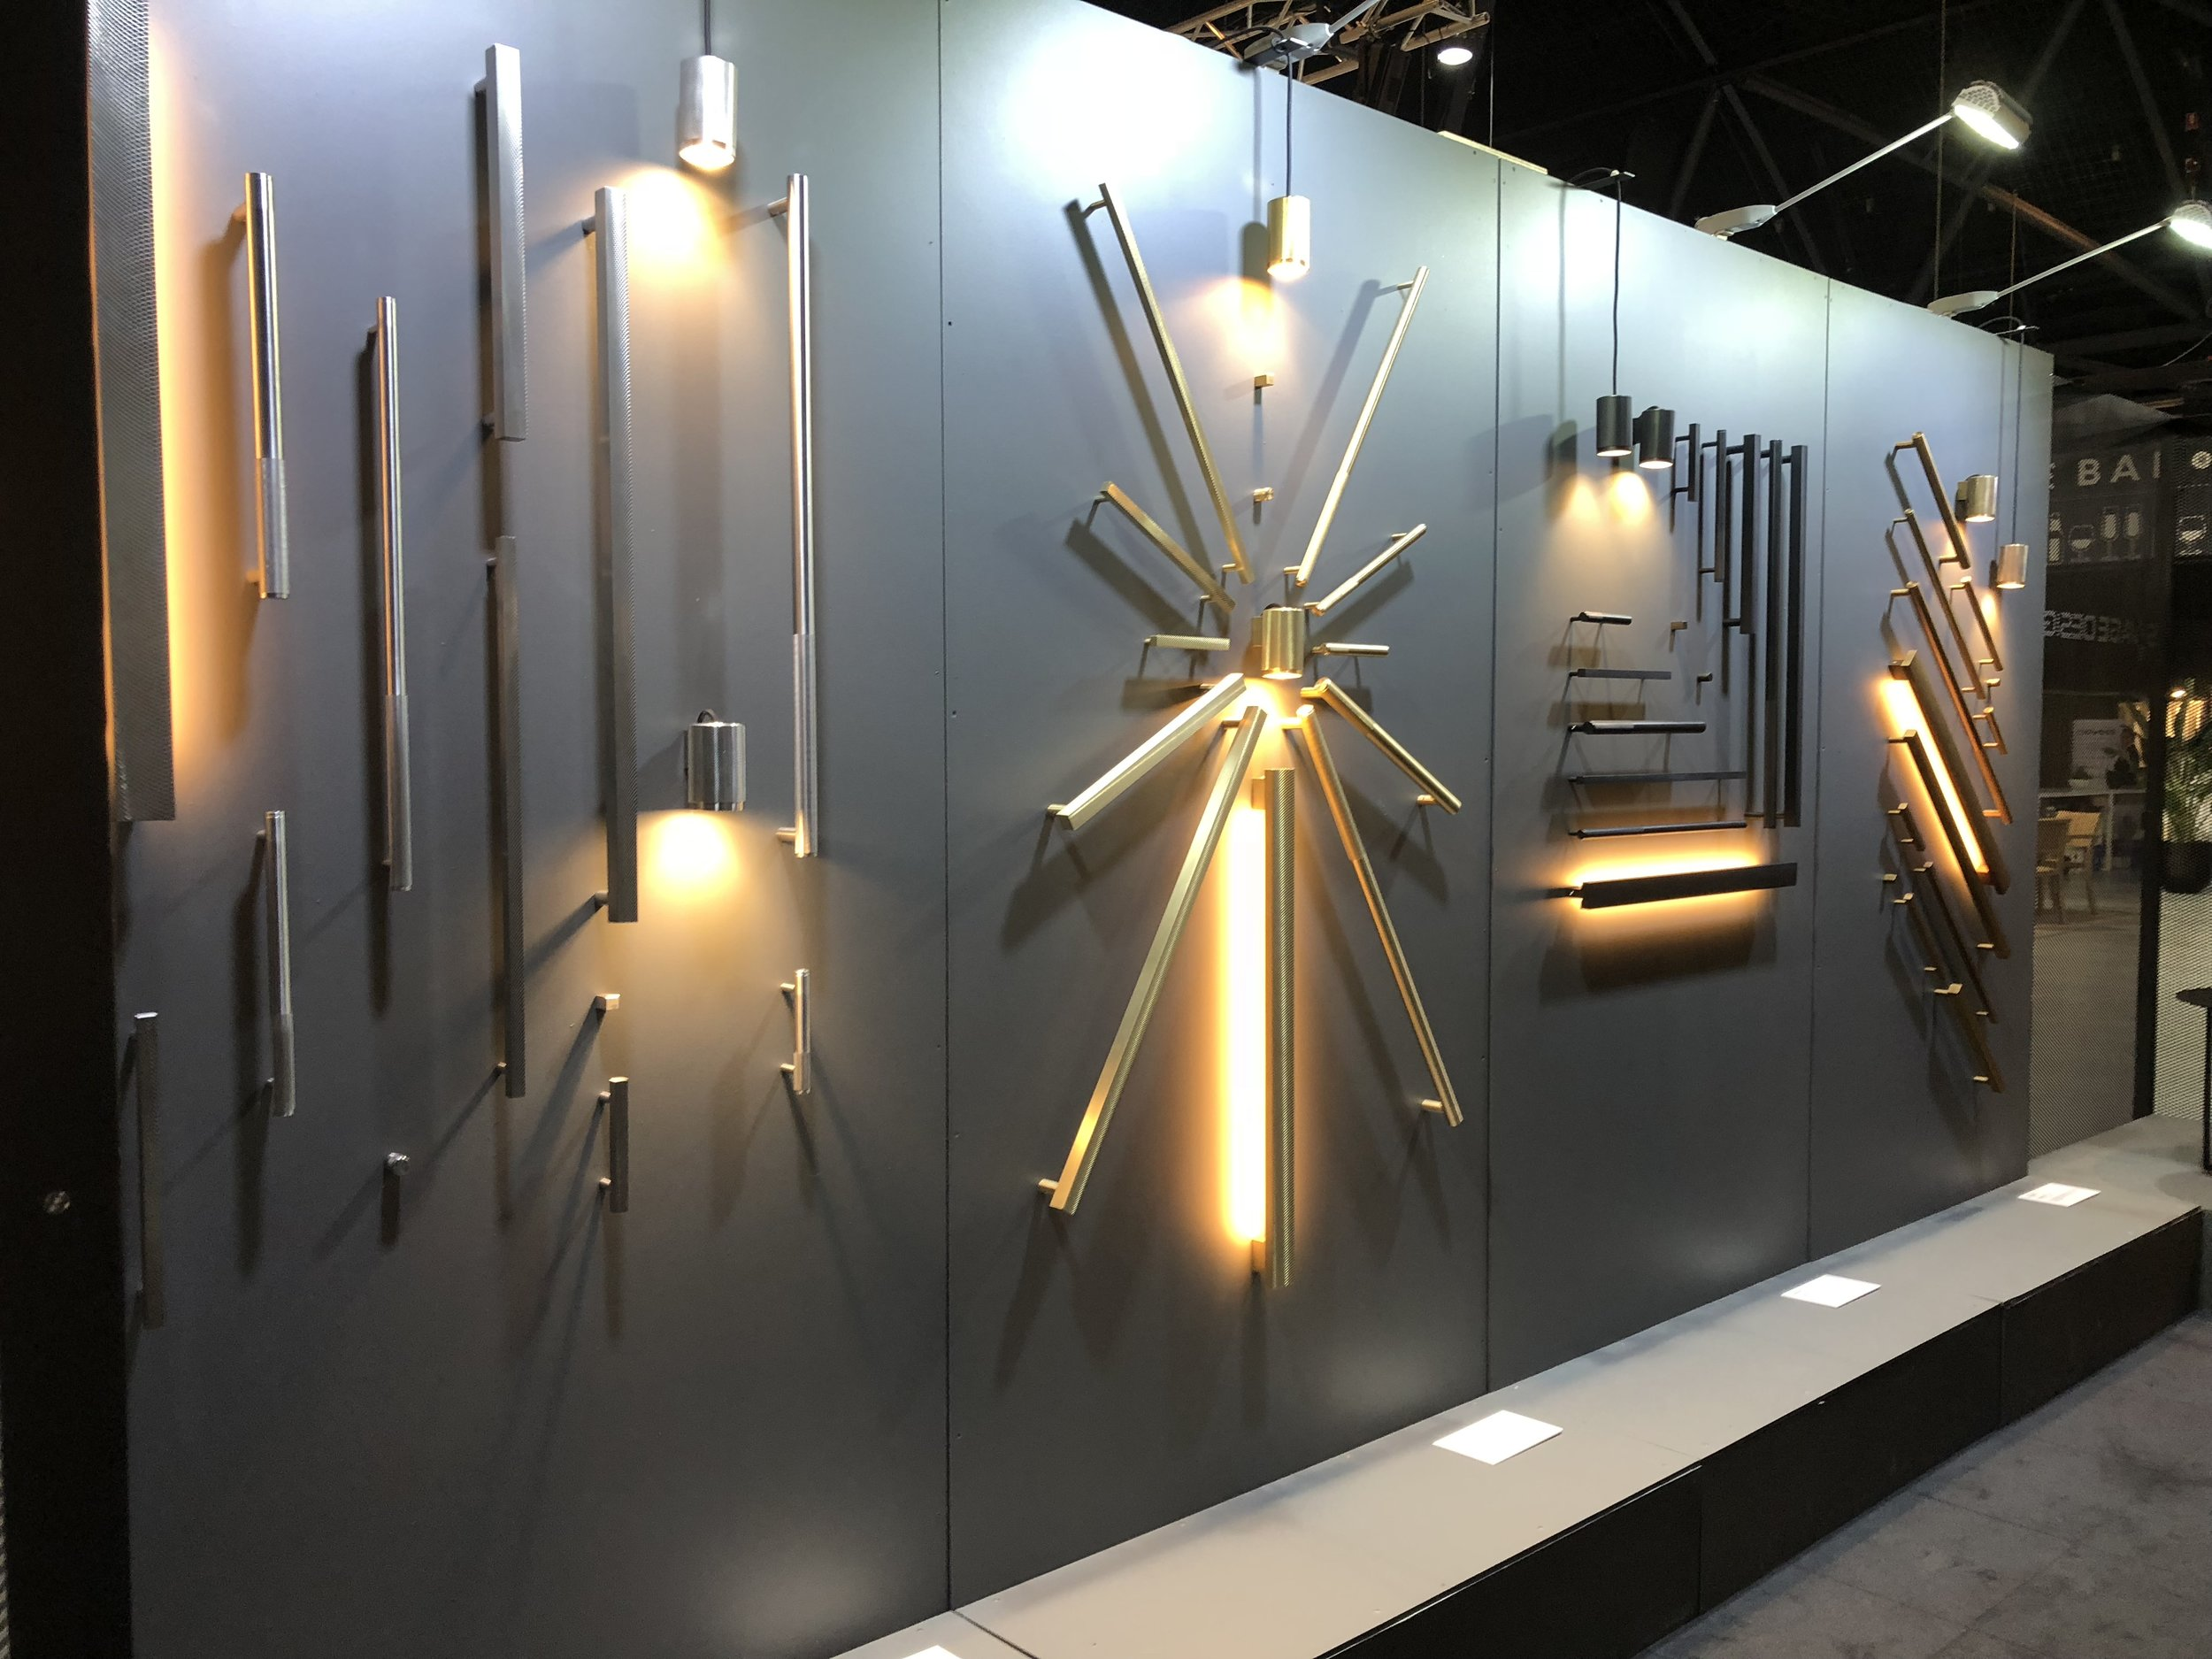 Savage Design showcased their expanding hardware range alongside some new furniture pieces.